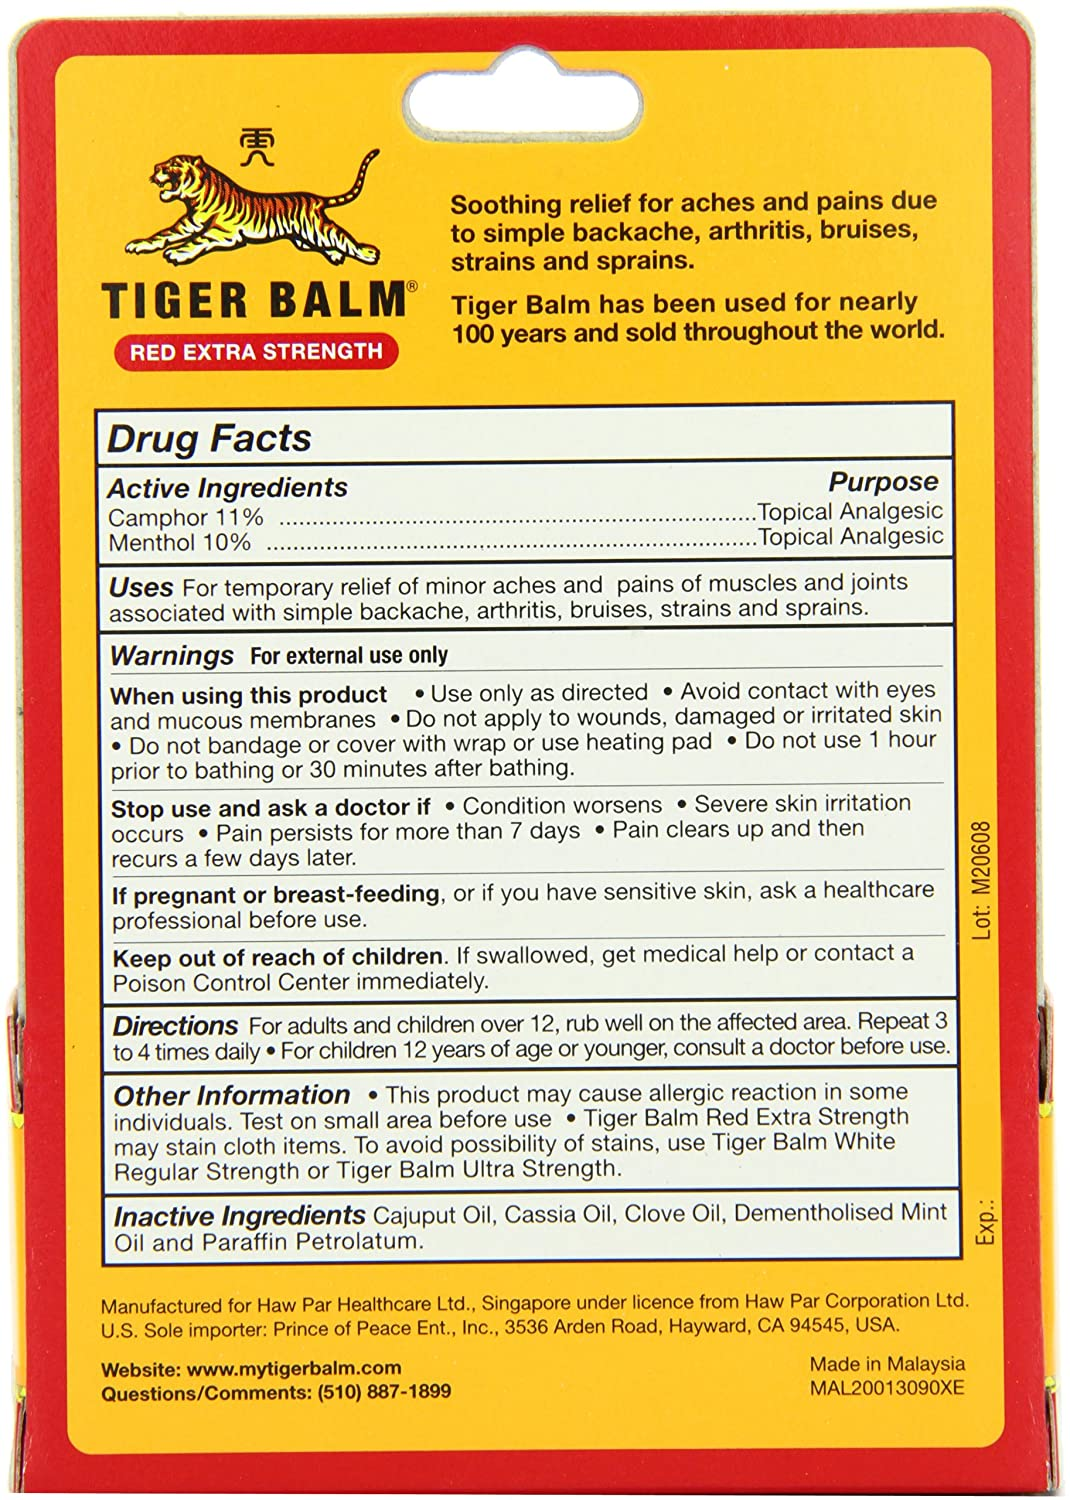 can you use tiger balm if pregnant